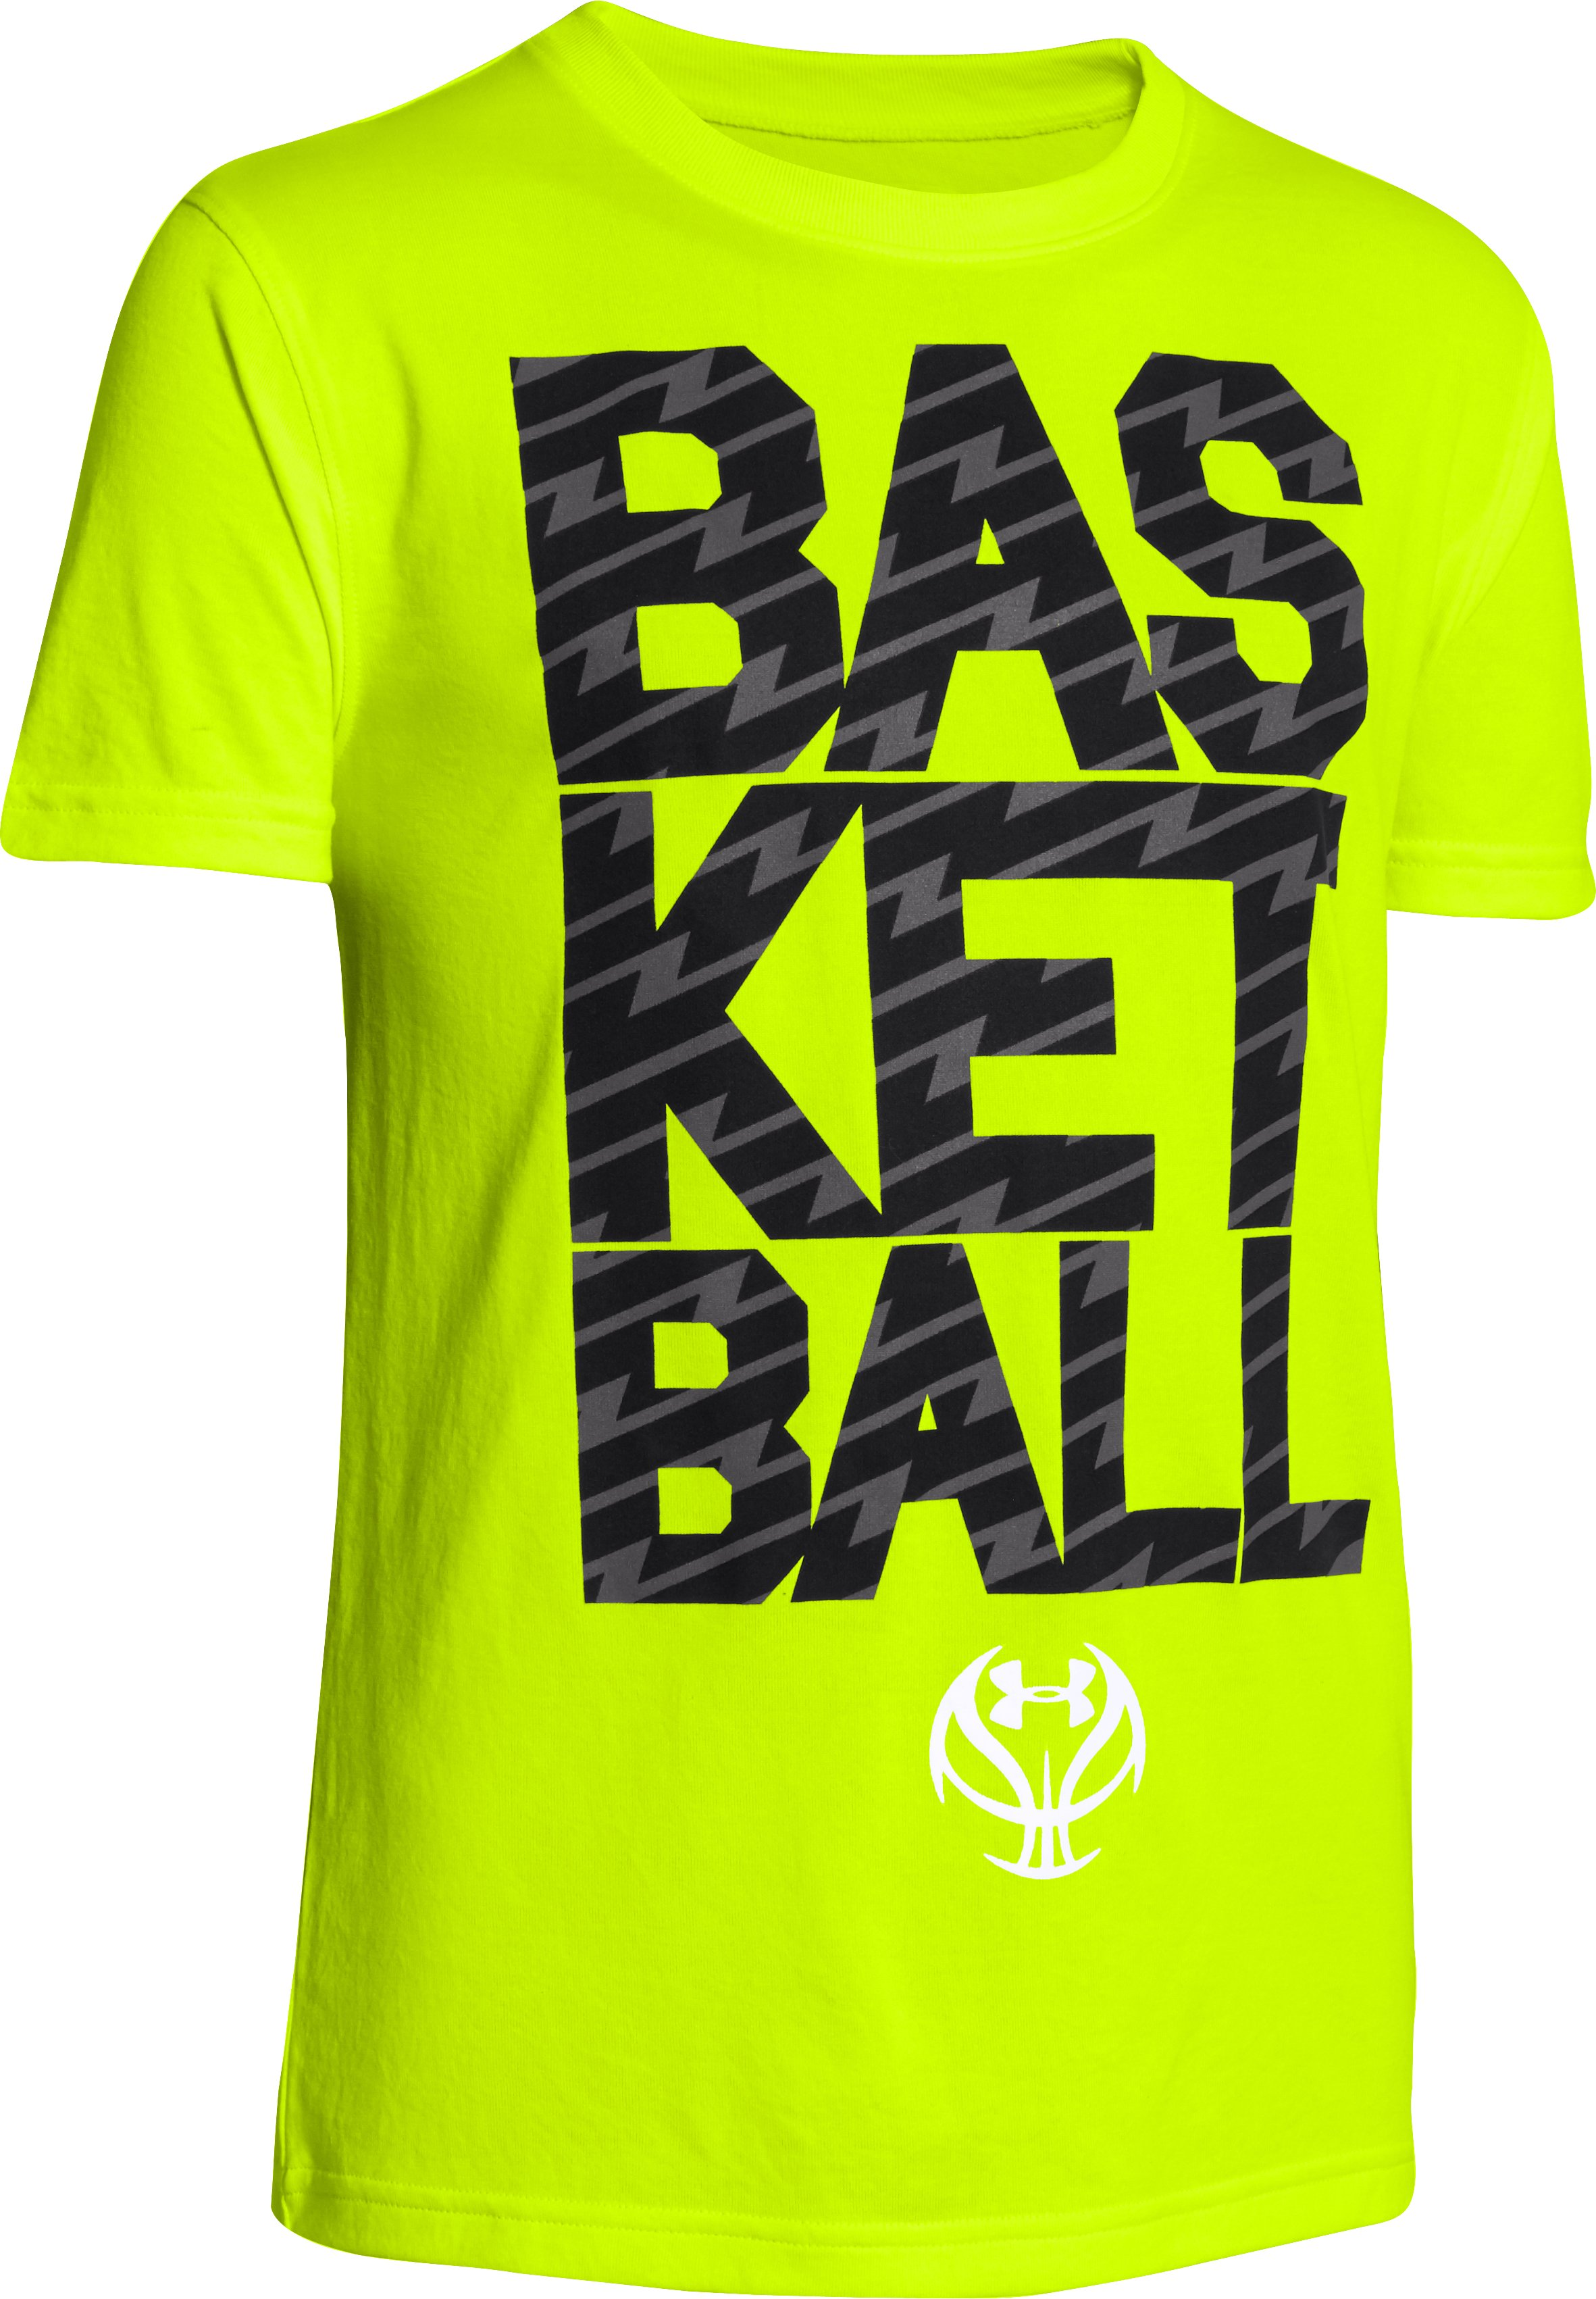 Boys' UA Floor General T-Shirt, High-Vis Yellow